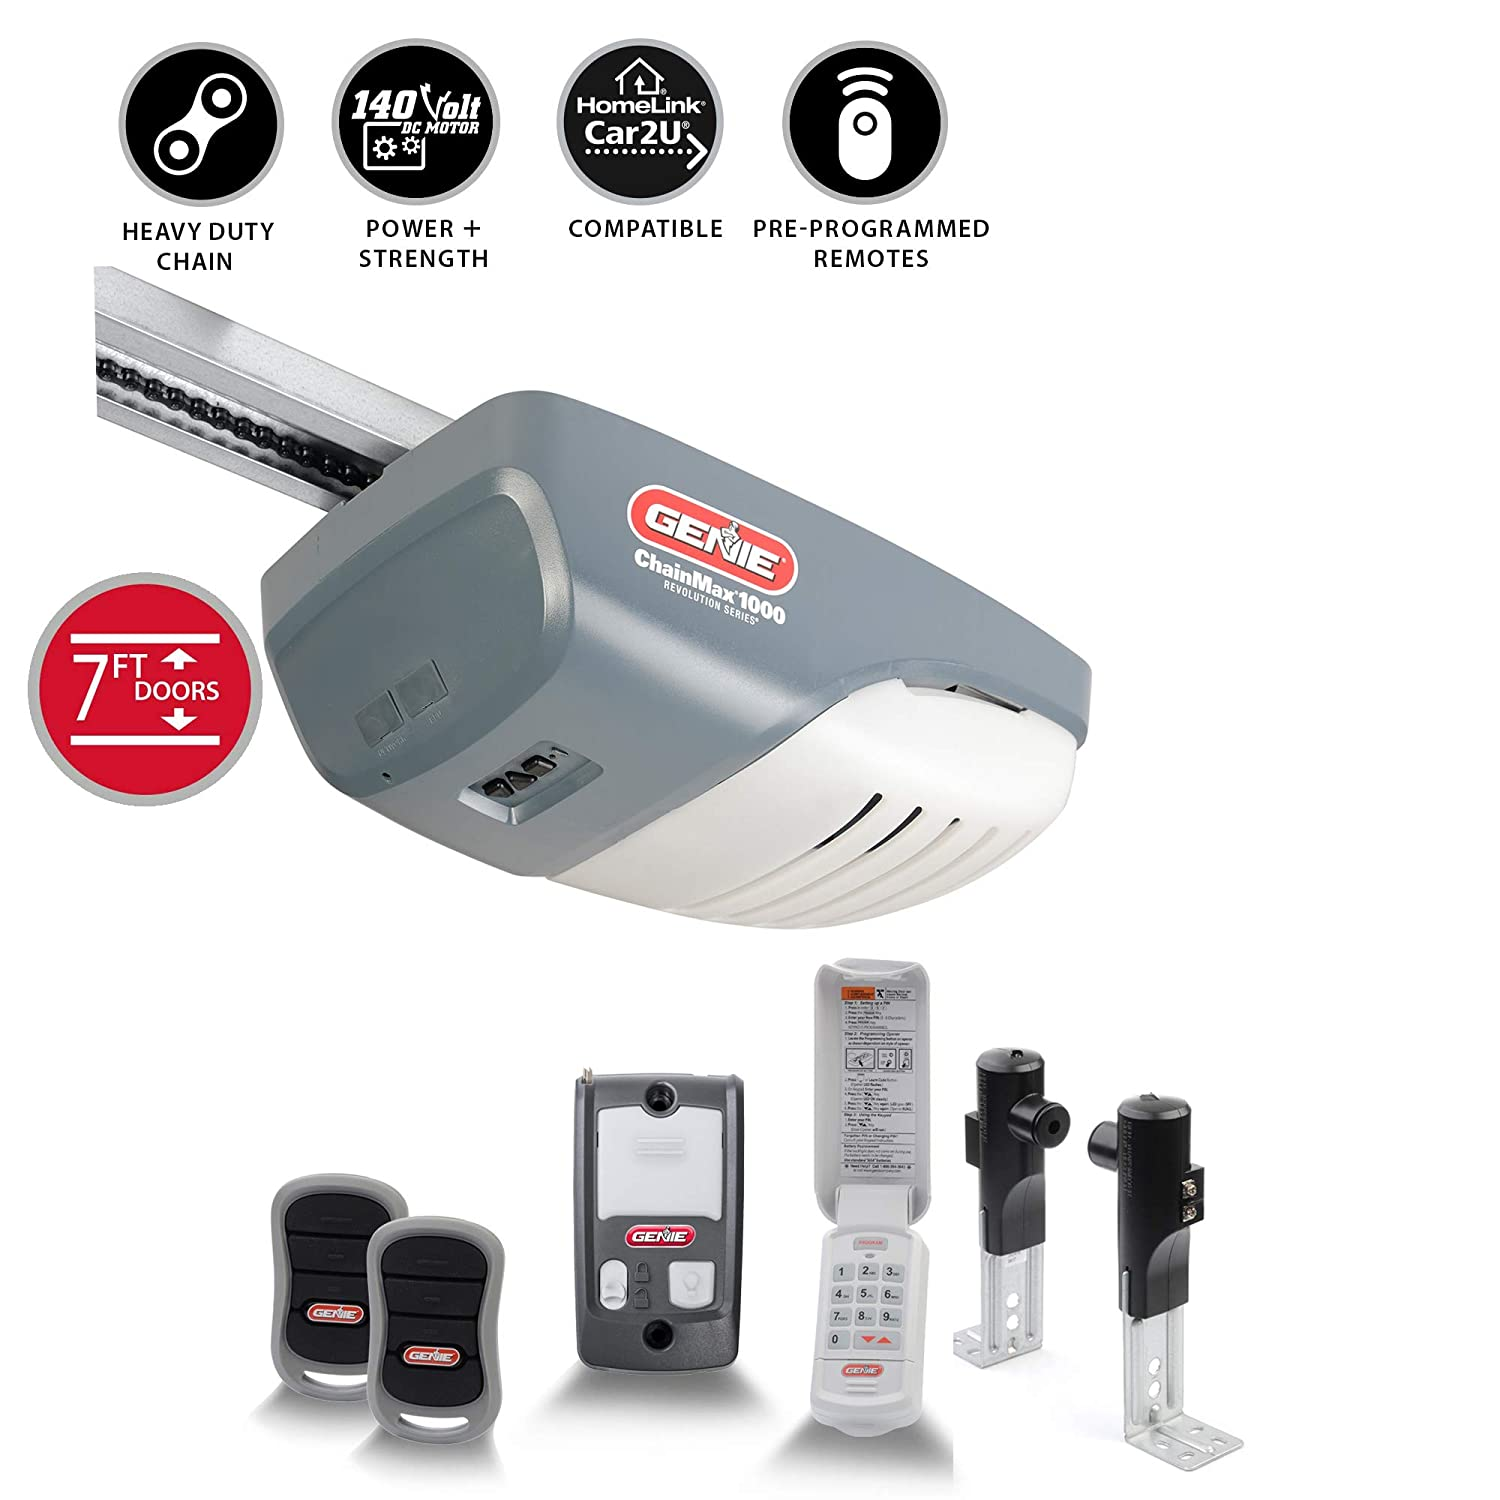 Genie ChainMax 1000 Garage Door Opener